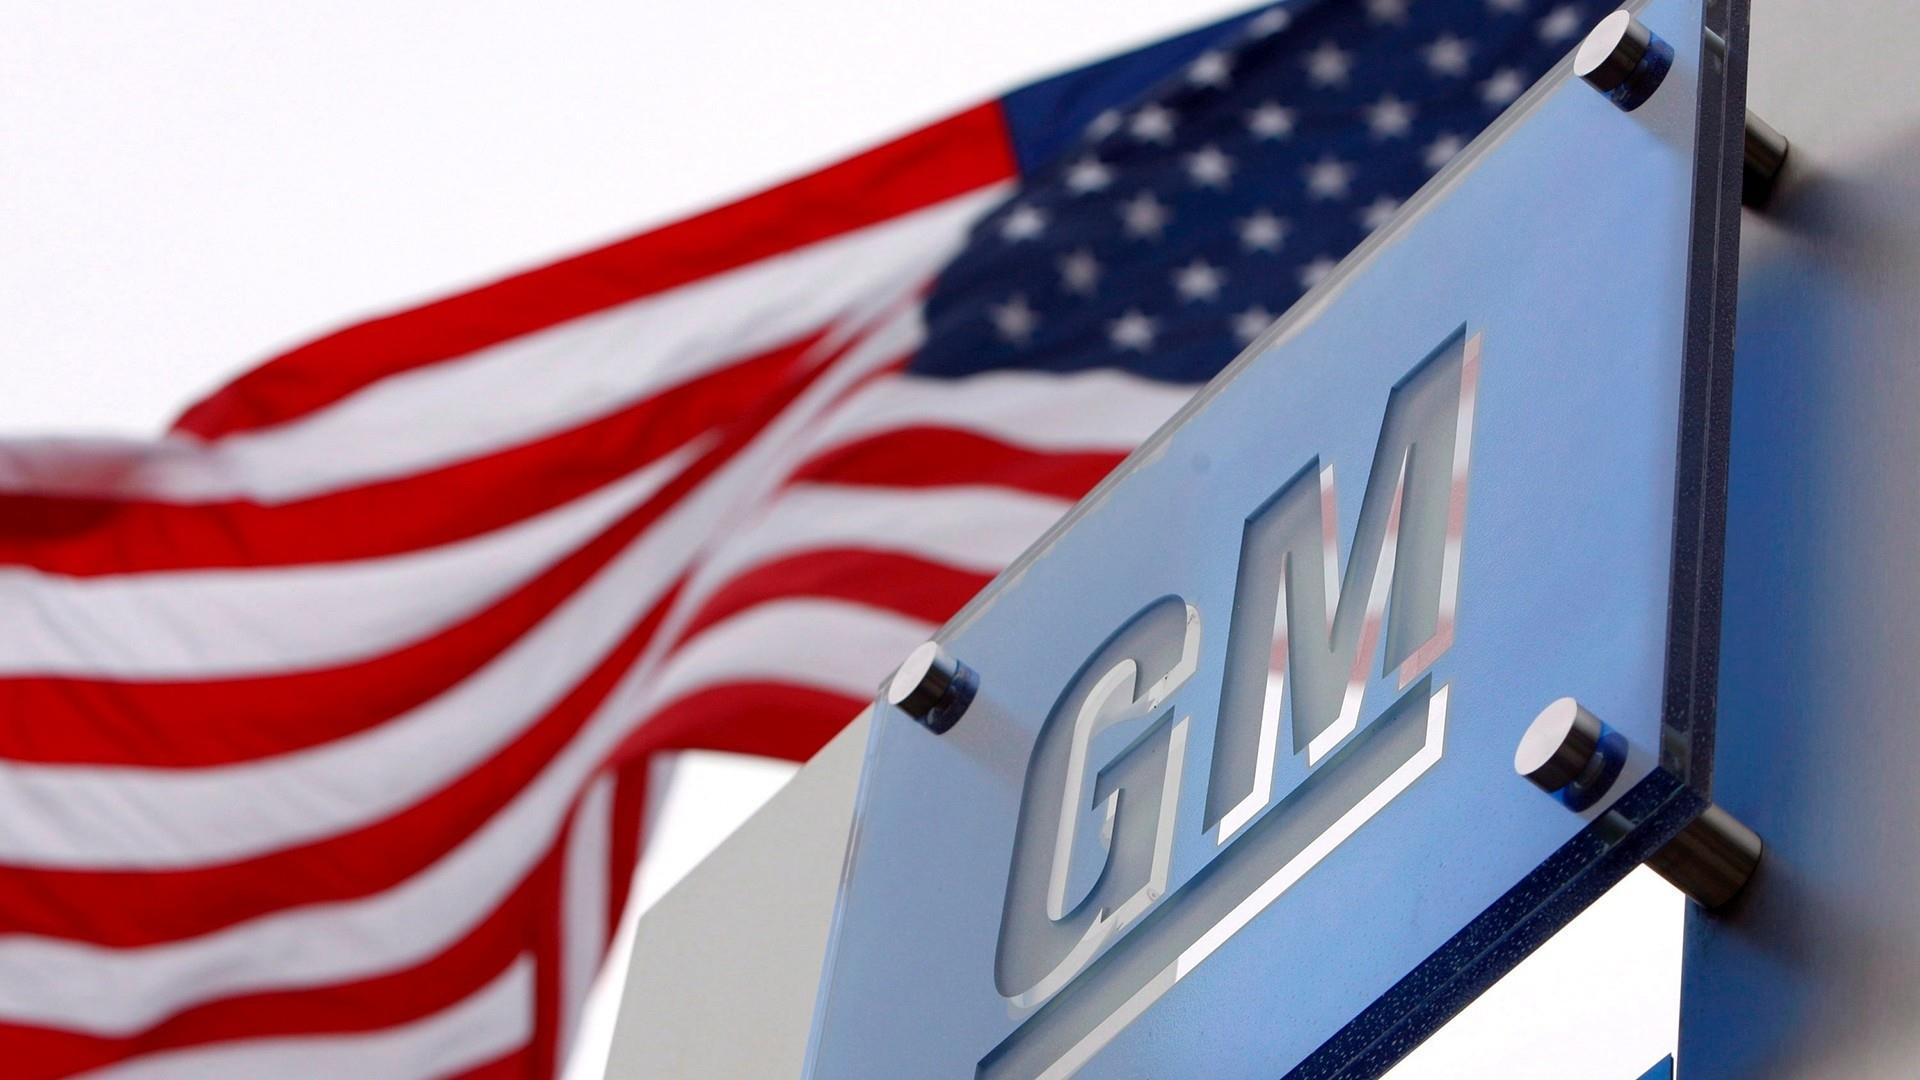 General Motors to slash over 14,000 jobs in North America